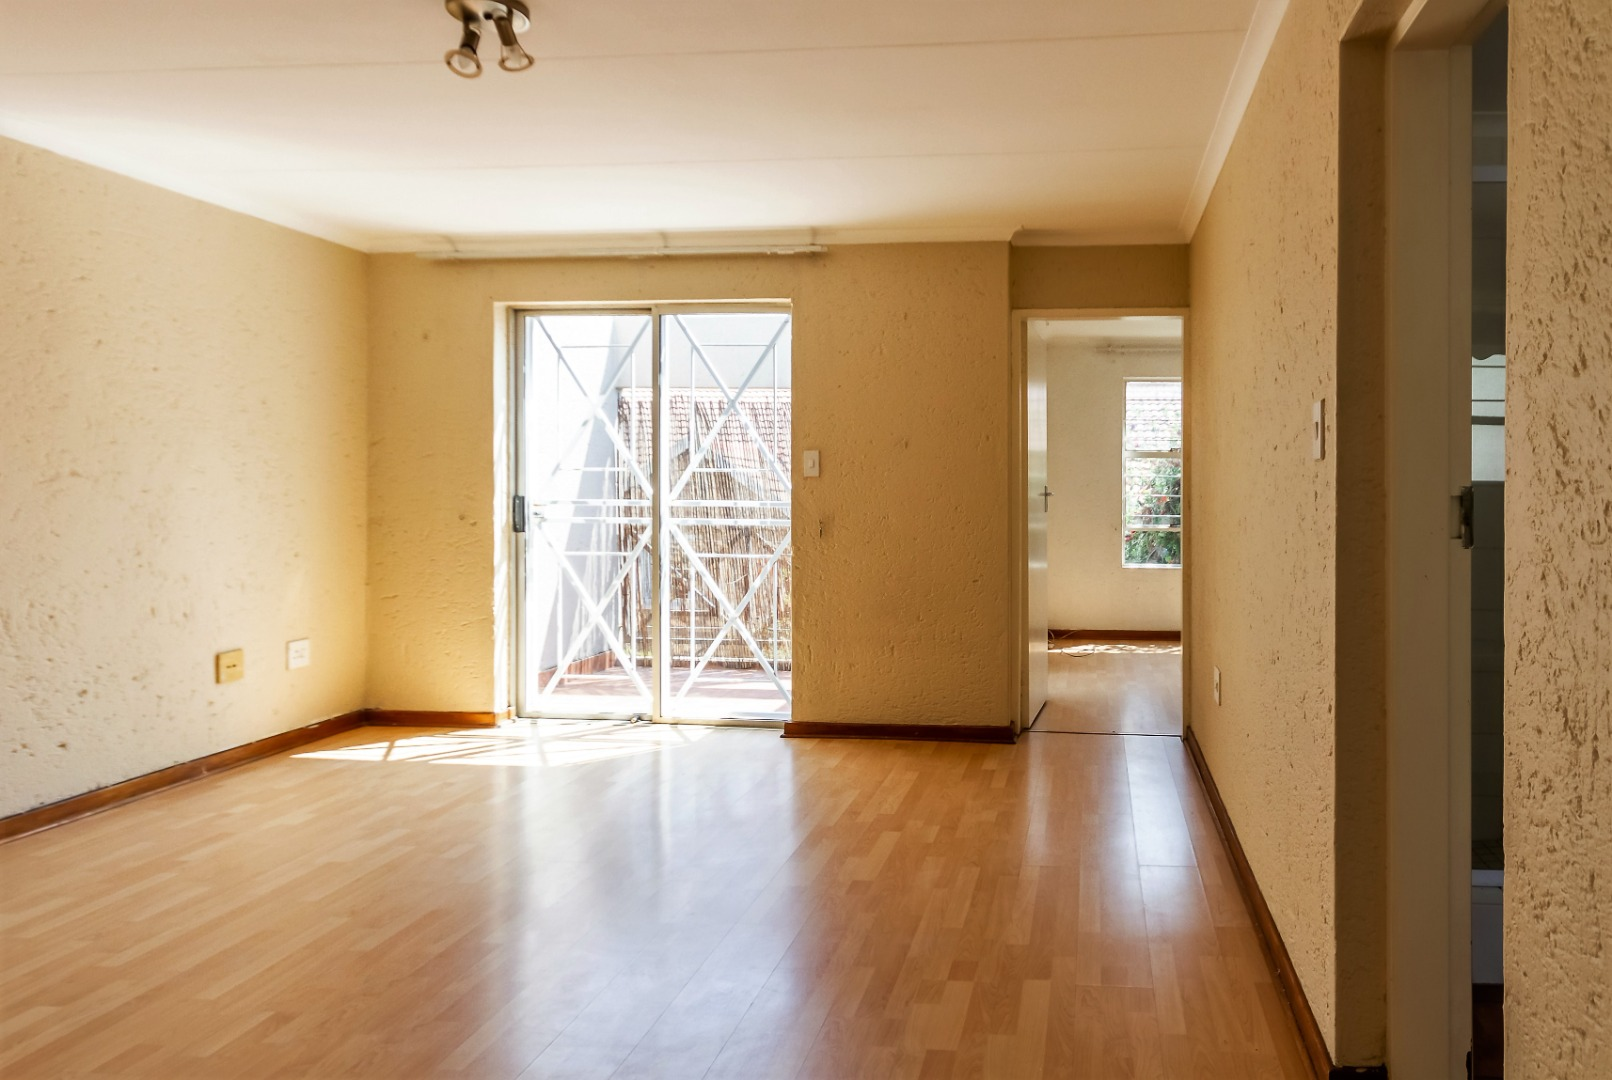 1 Bedroom Townhouse For Sale in Ferndale